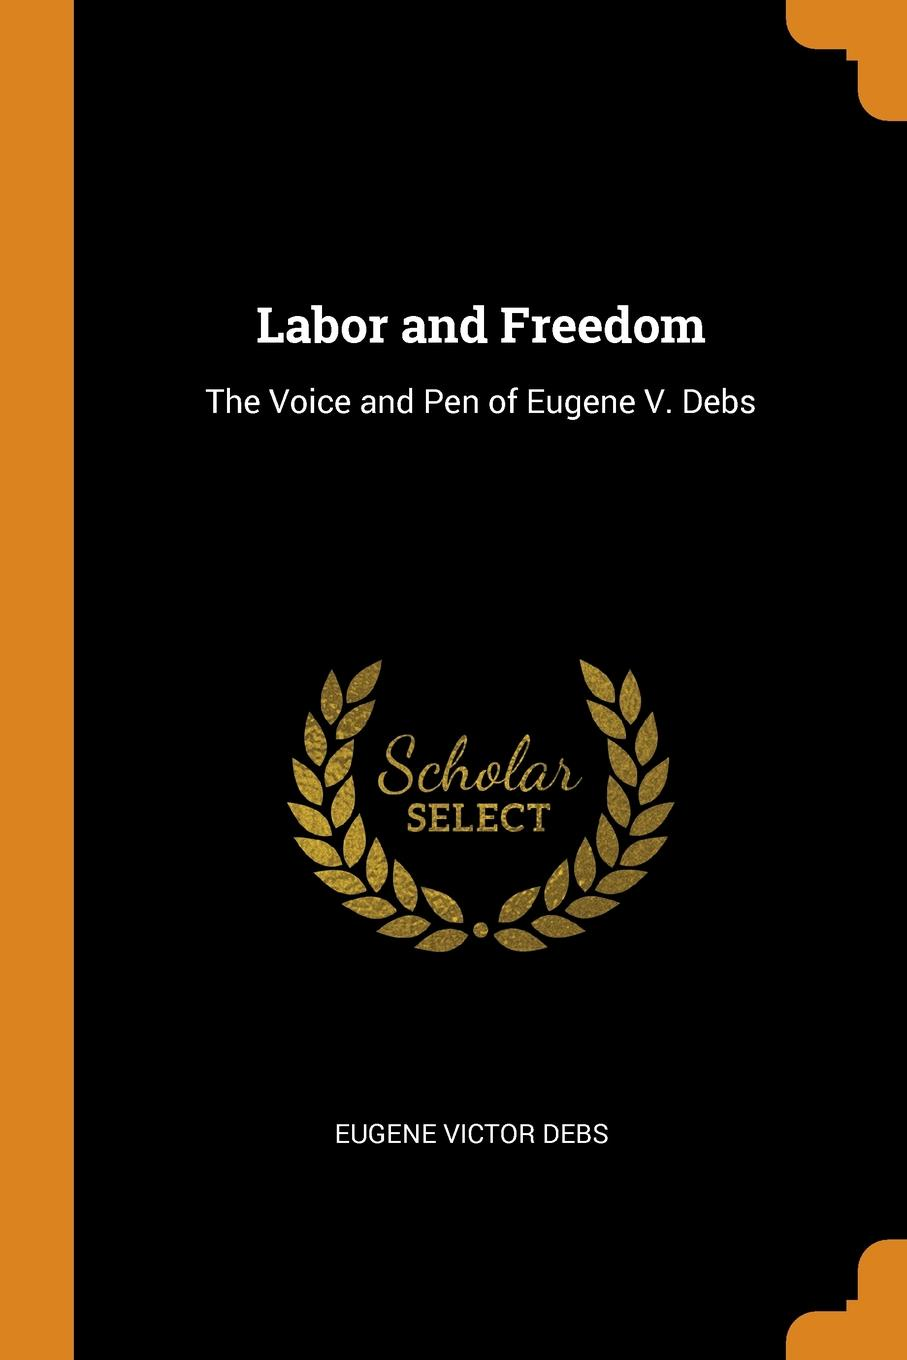 Eugene Victor Debs Labor and Freedom. The Voice and Pen of Eugene V. Debs